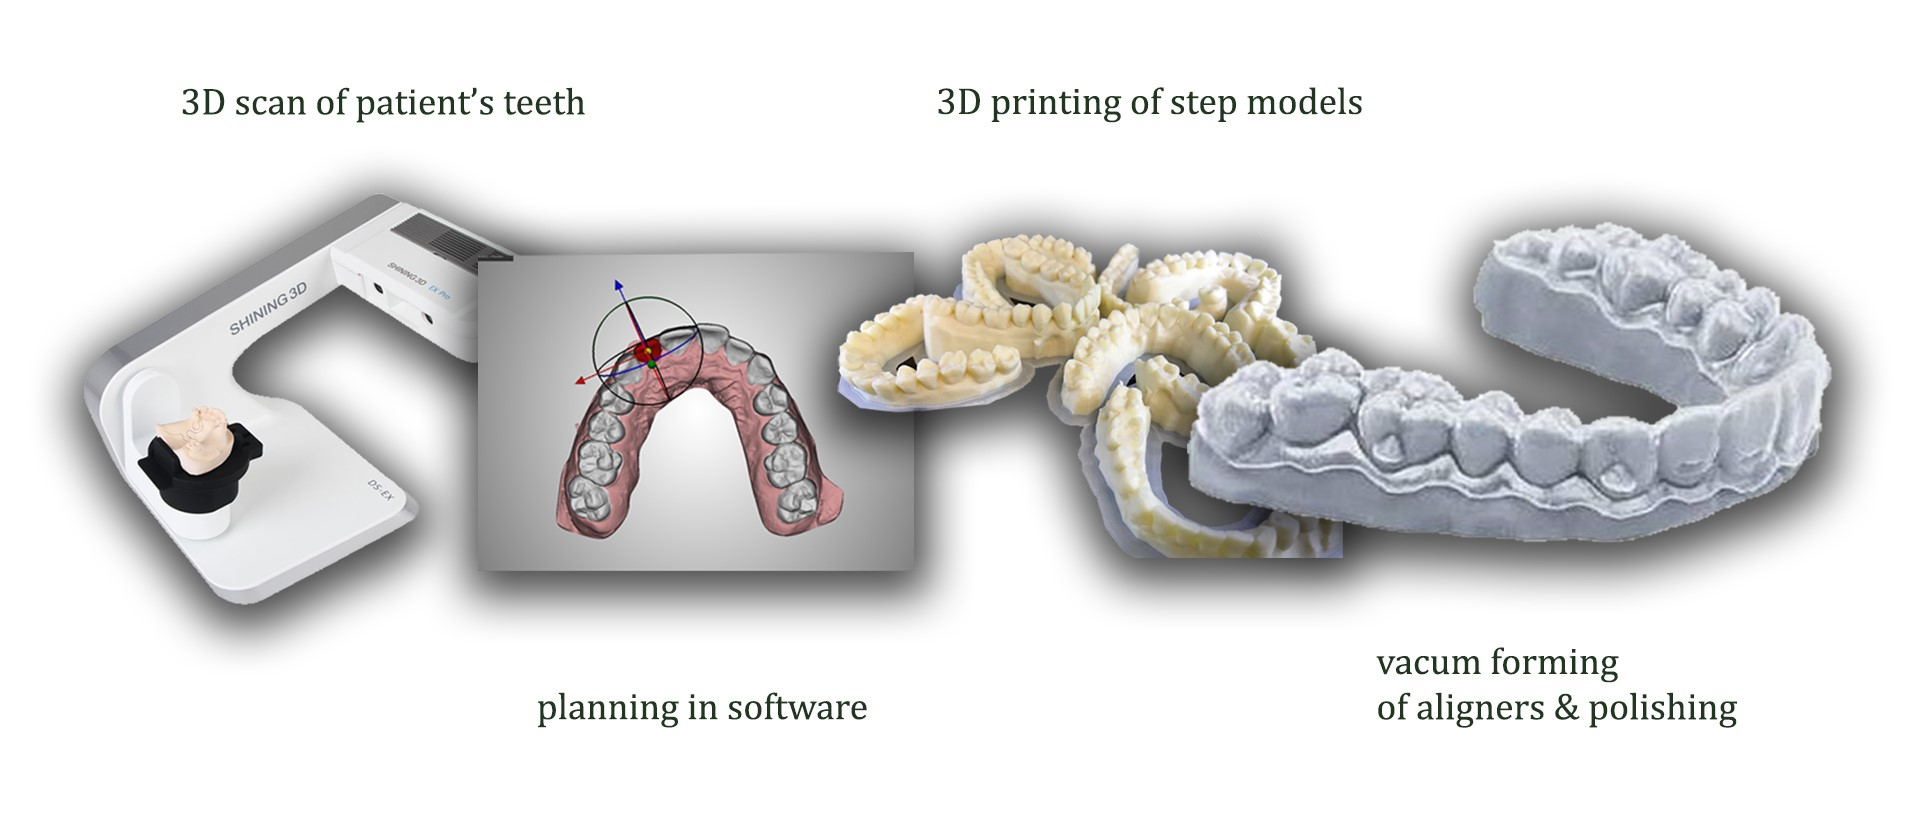 The entire process of aligner production